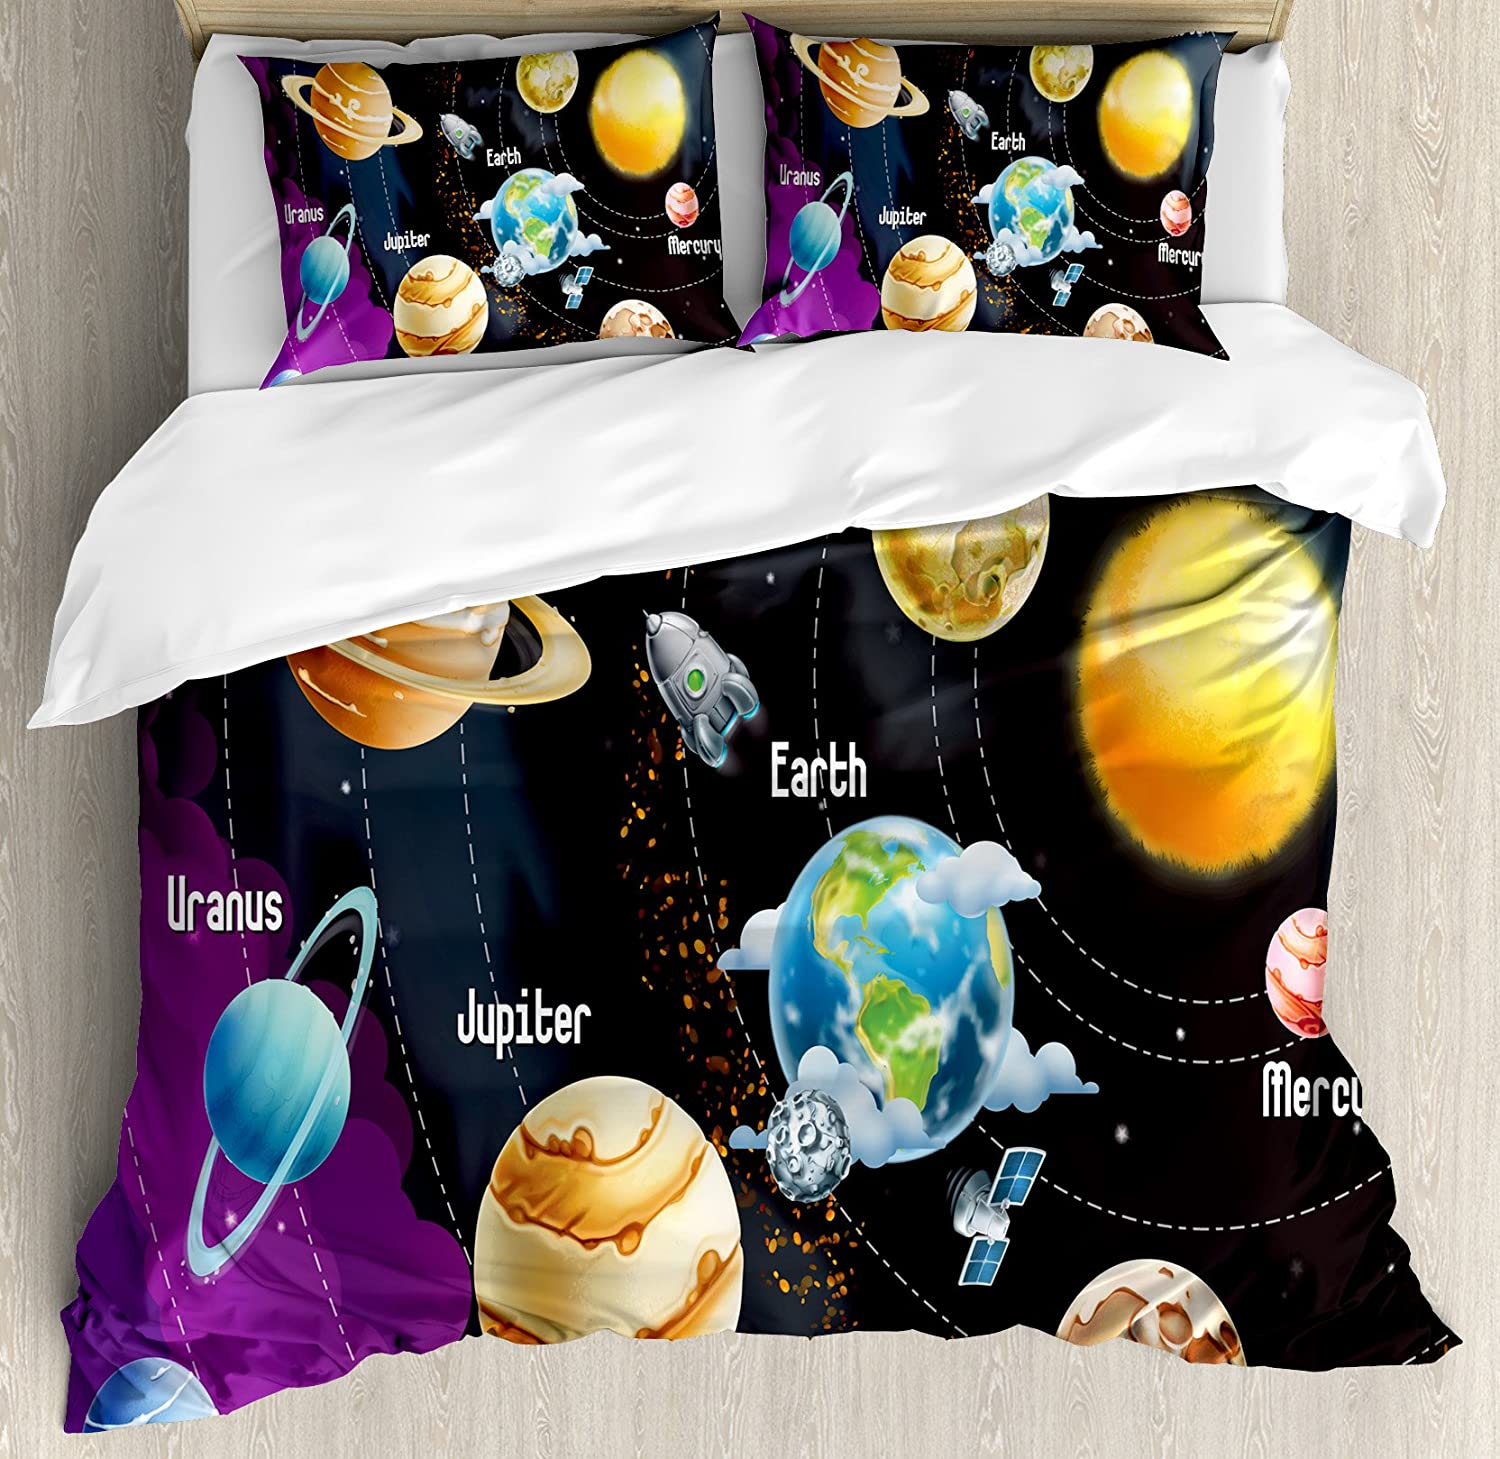 Ambesonne Outer Space Duvet Cover Set, Solar System of Planets Milky Way Neptune Venus Mercury Sphere Illustration, Decorative 3 Piece Bedding Set with 2 Pillow Shams, Queen Size, Black Purple